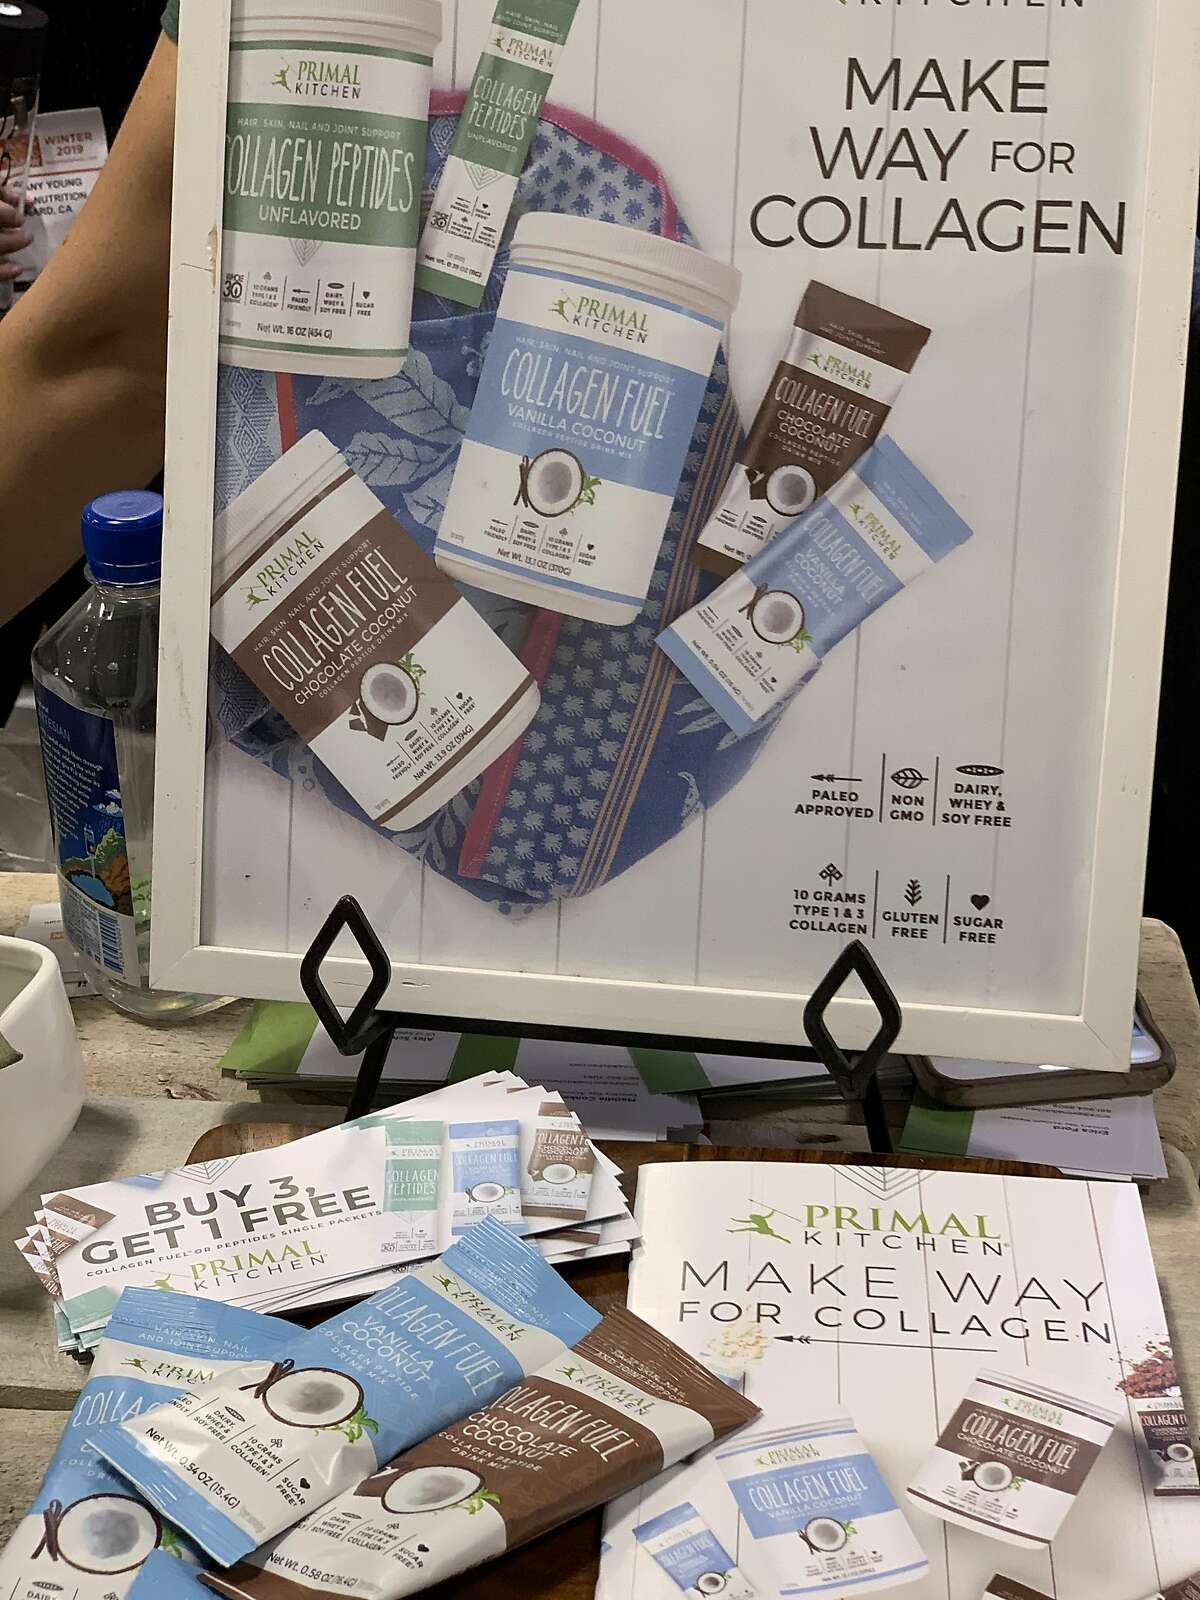 Collagen-infused products were also a noticeable trend.